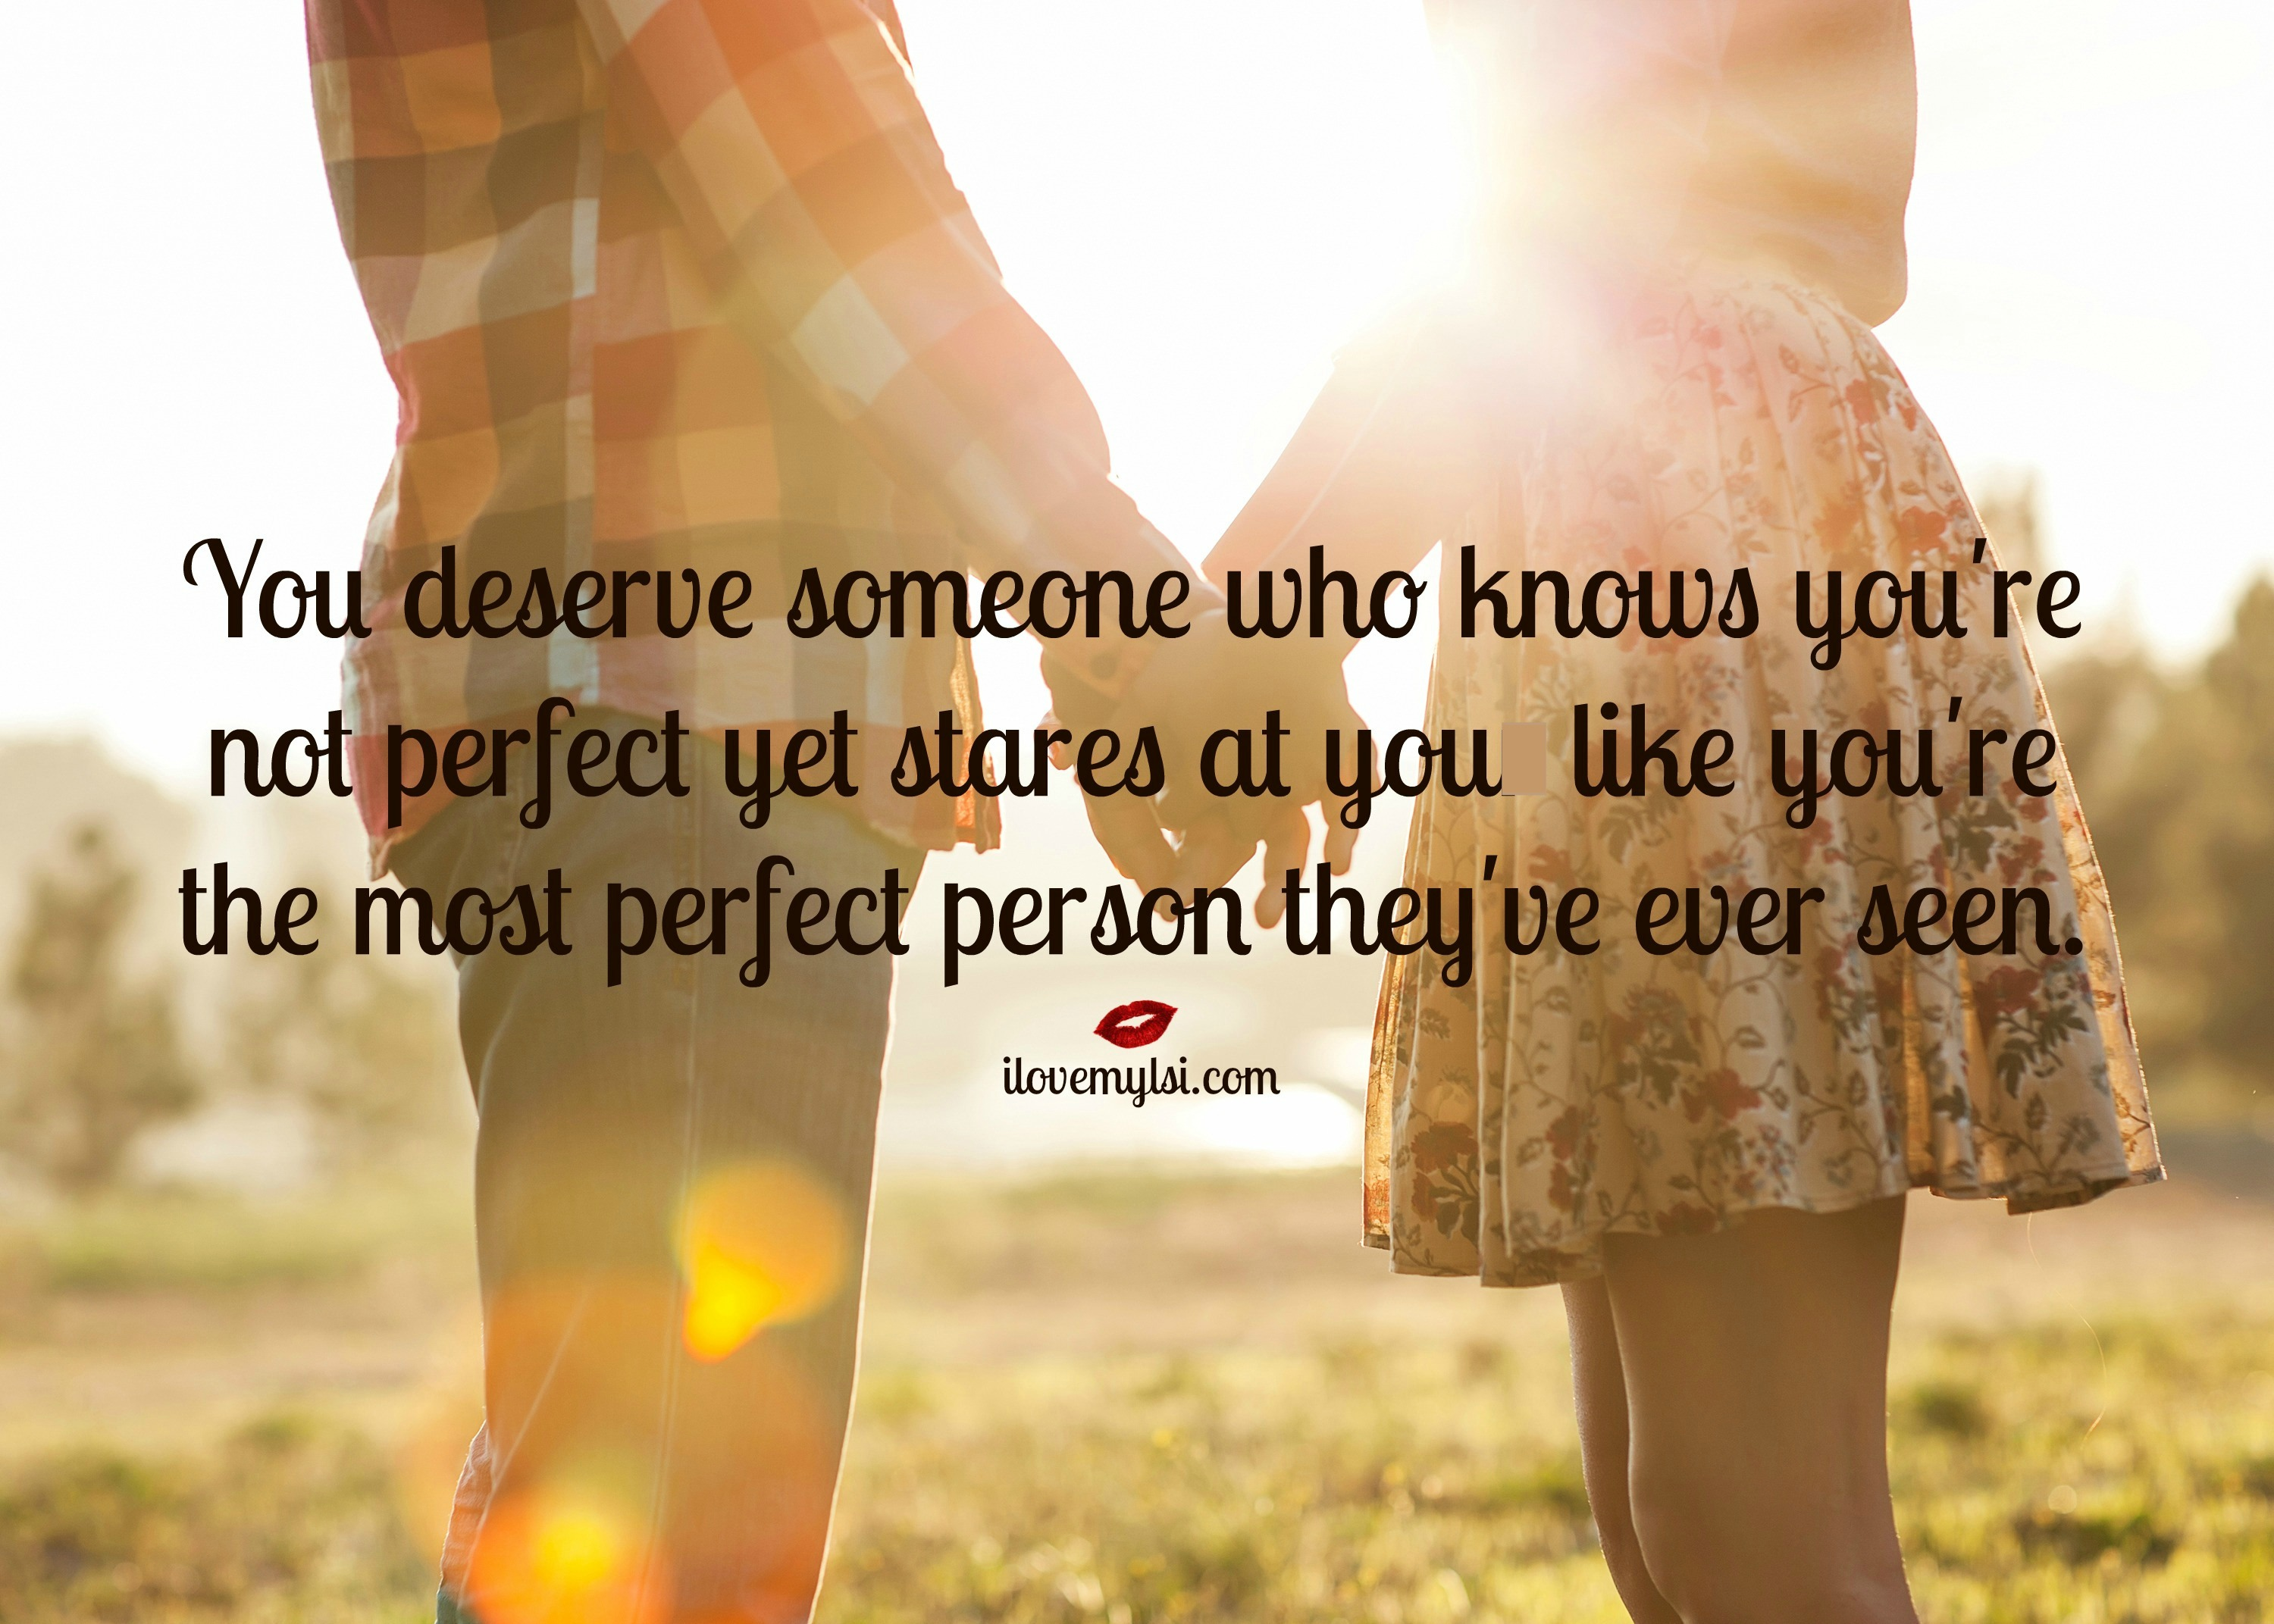 You Deserve Someone Who Knows You're Not Perfect